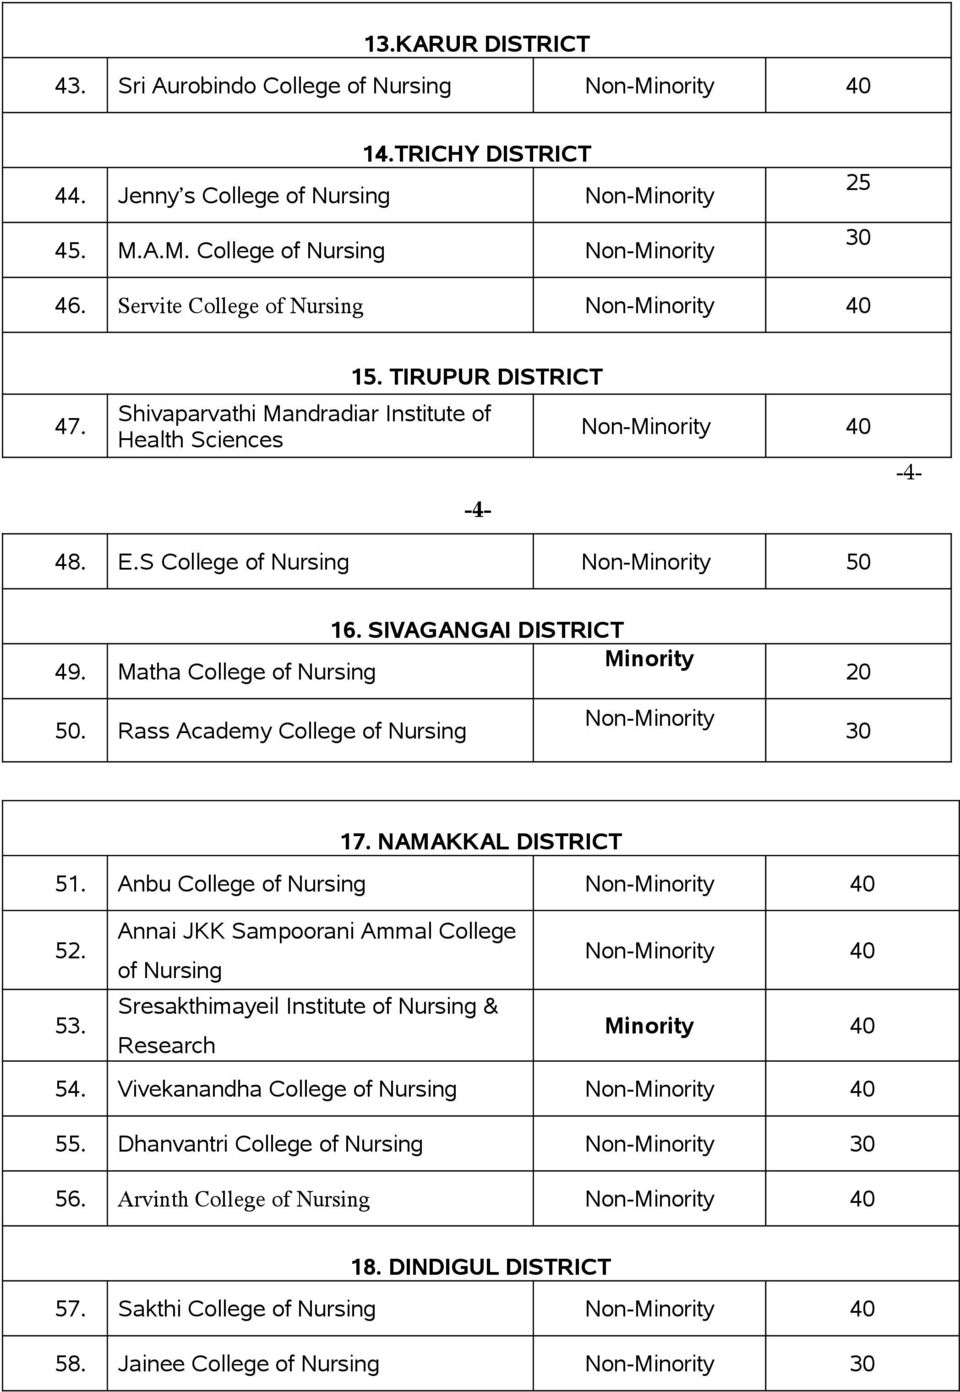 Rass Academy College of Nursing 30 17. NAMAKKAL DISTRICT 51. Anbu College of Nursing 52. Annai JKK Sampoorani Ammal College of Nursing 53.